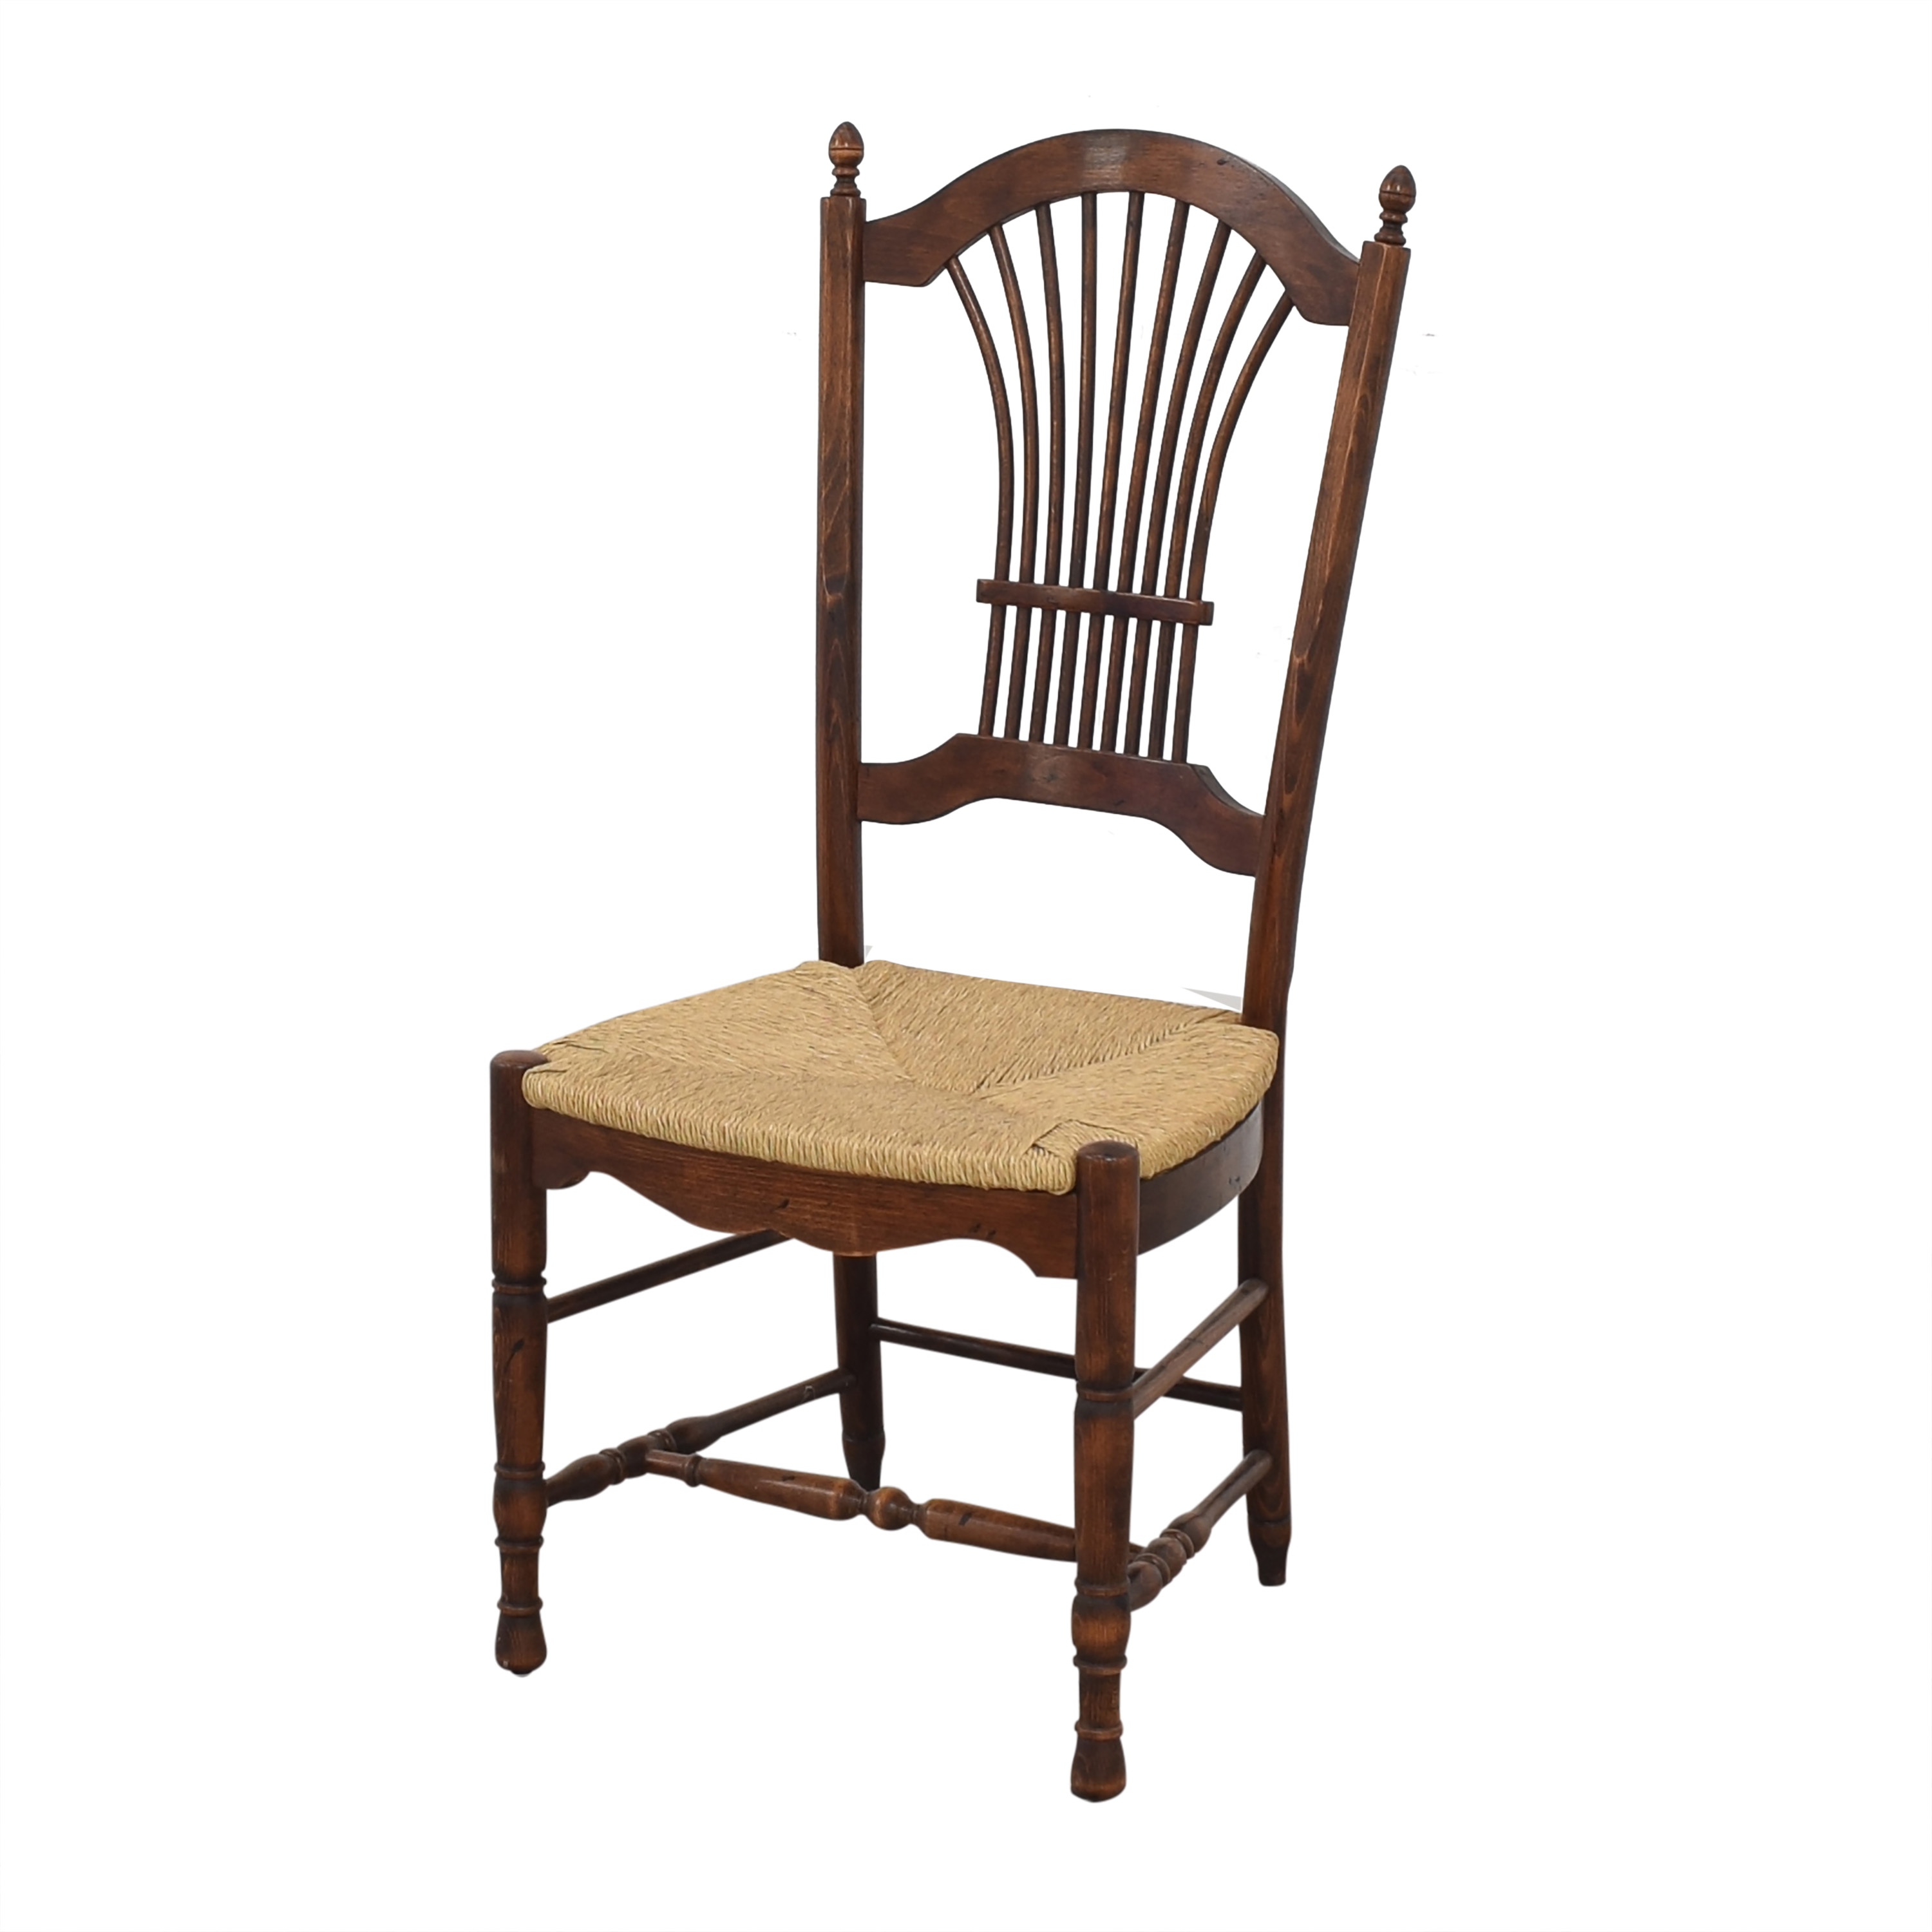 Cane Seat Dining Chairs brown